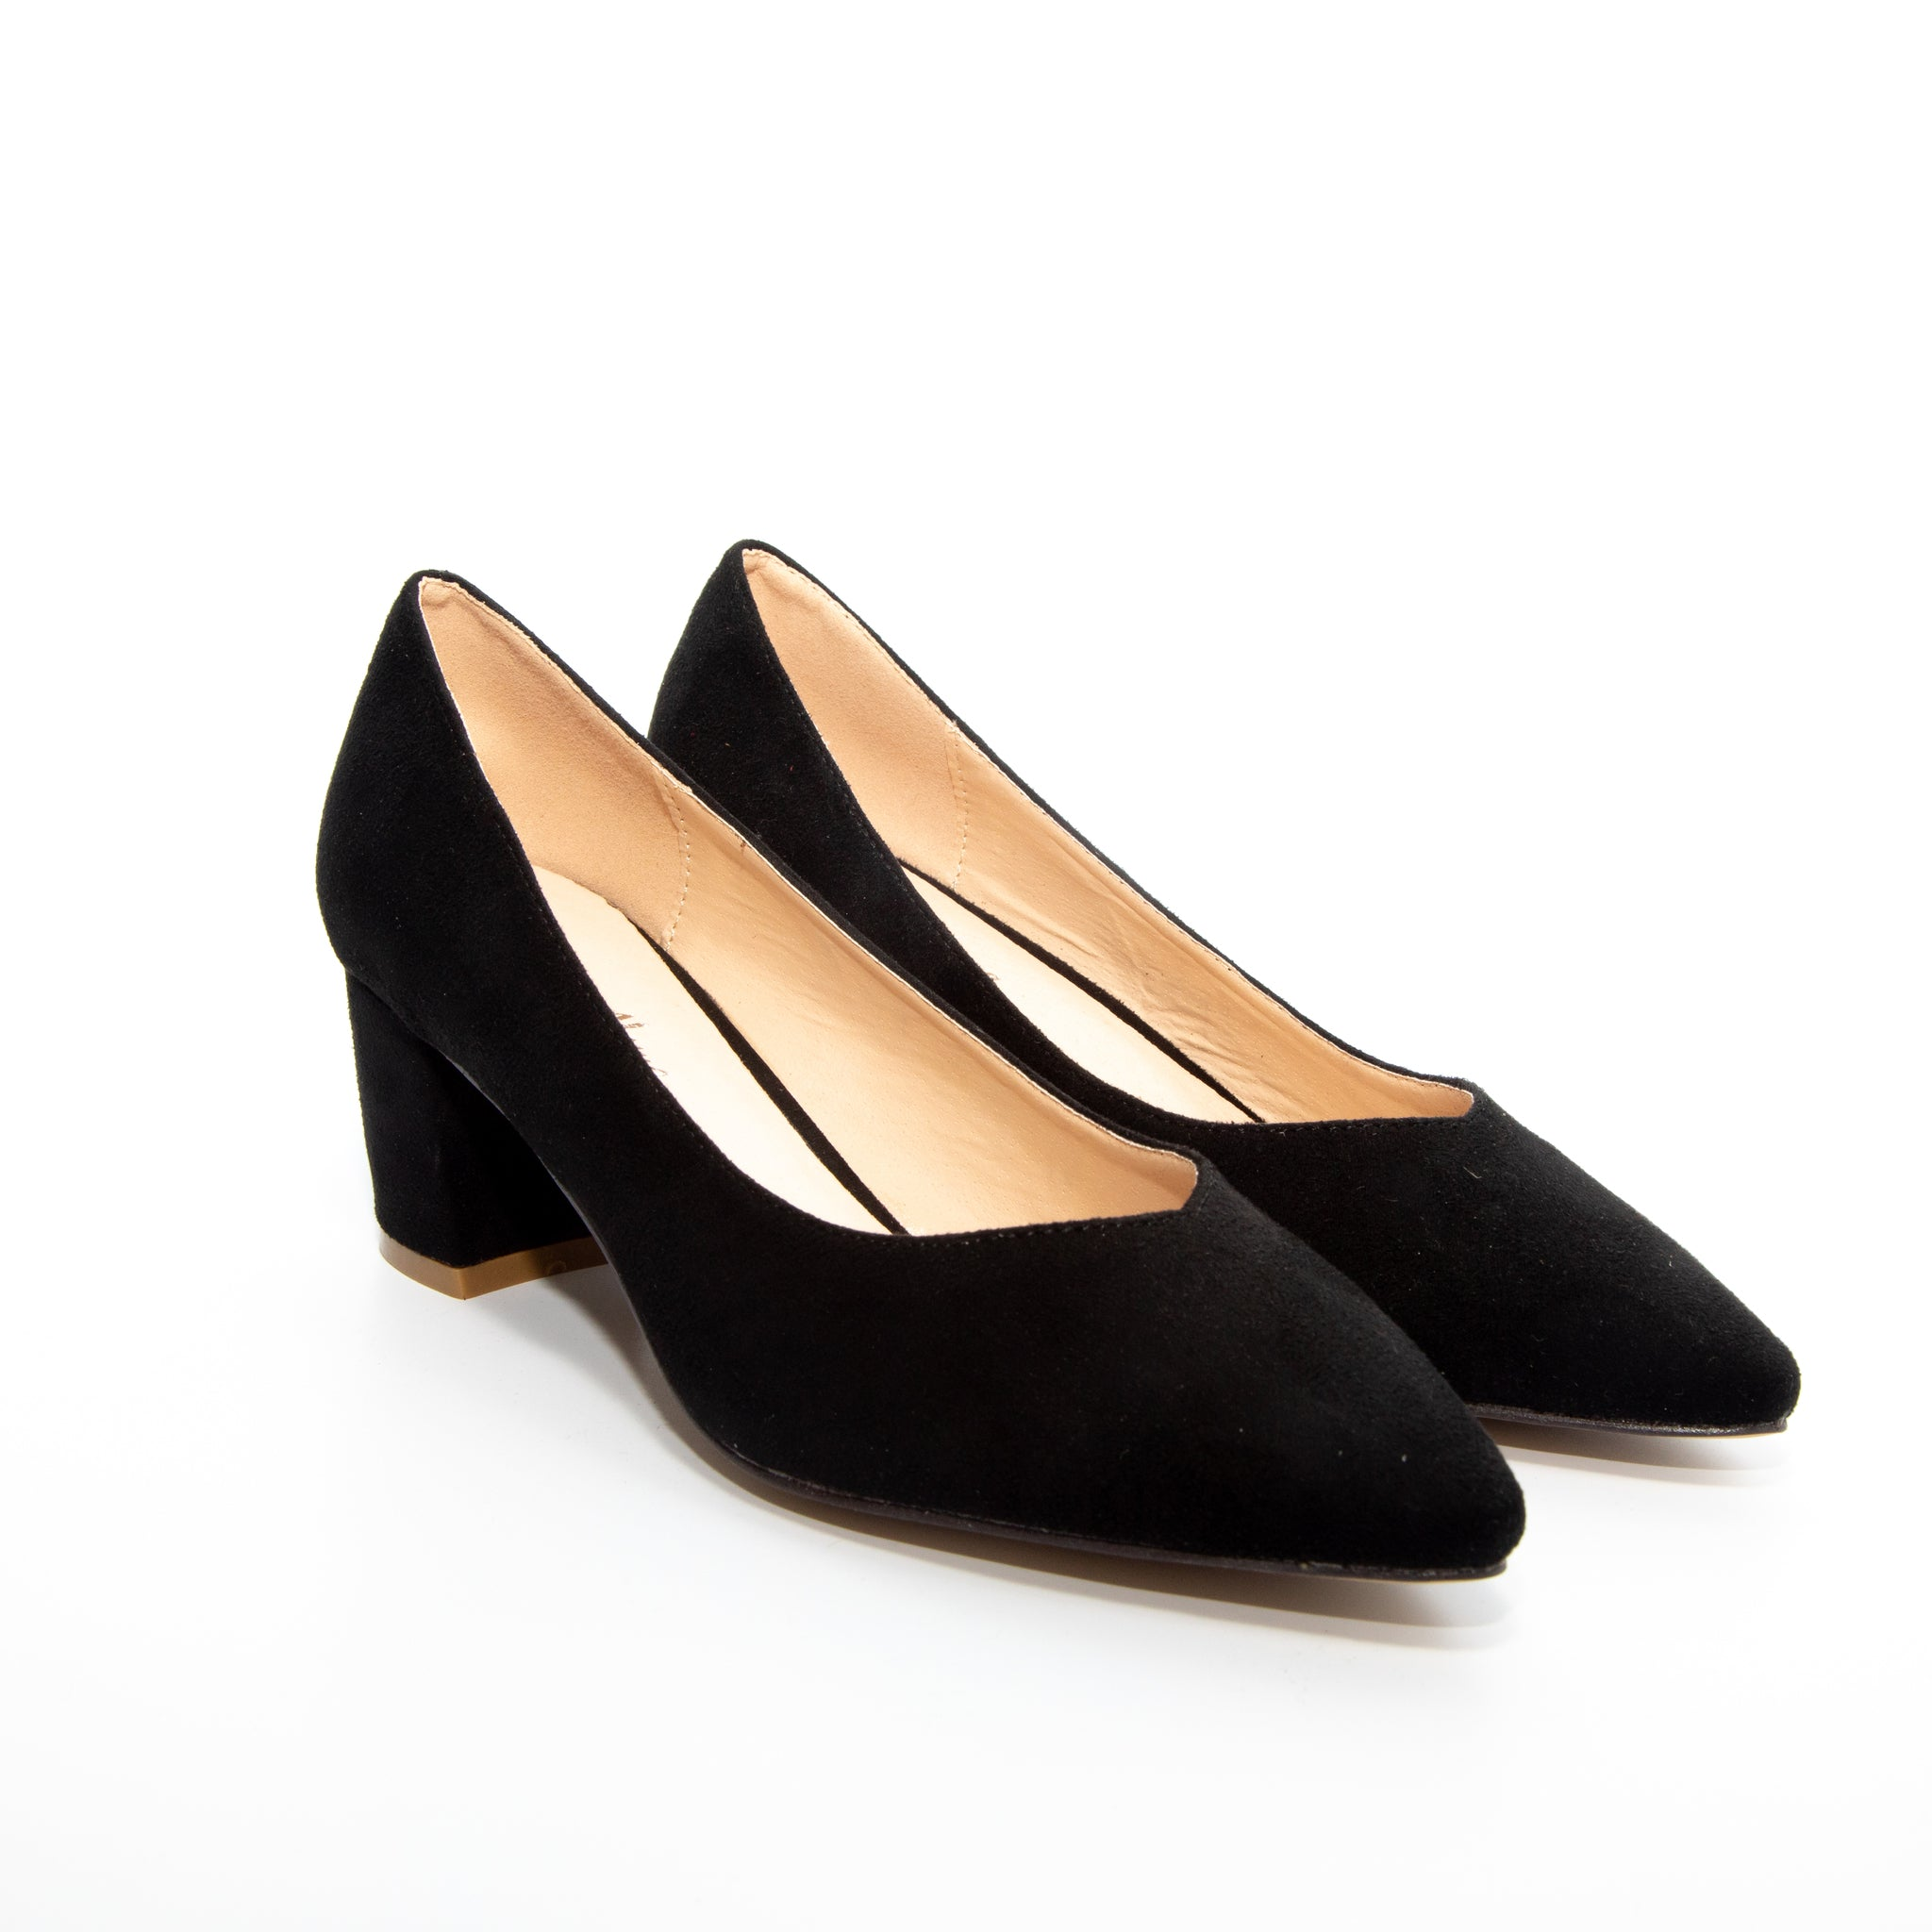 Ivanka Women's Pointed Toe Pumps